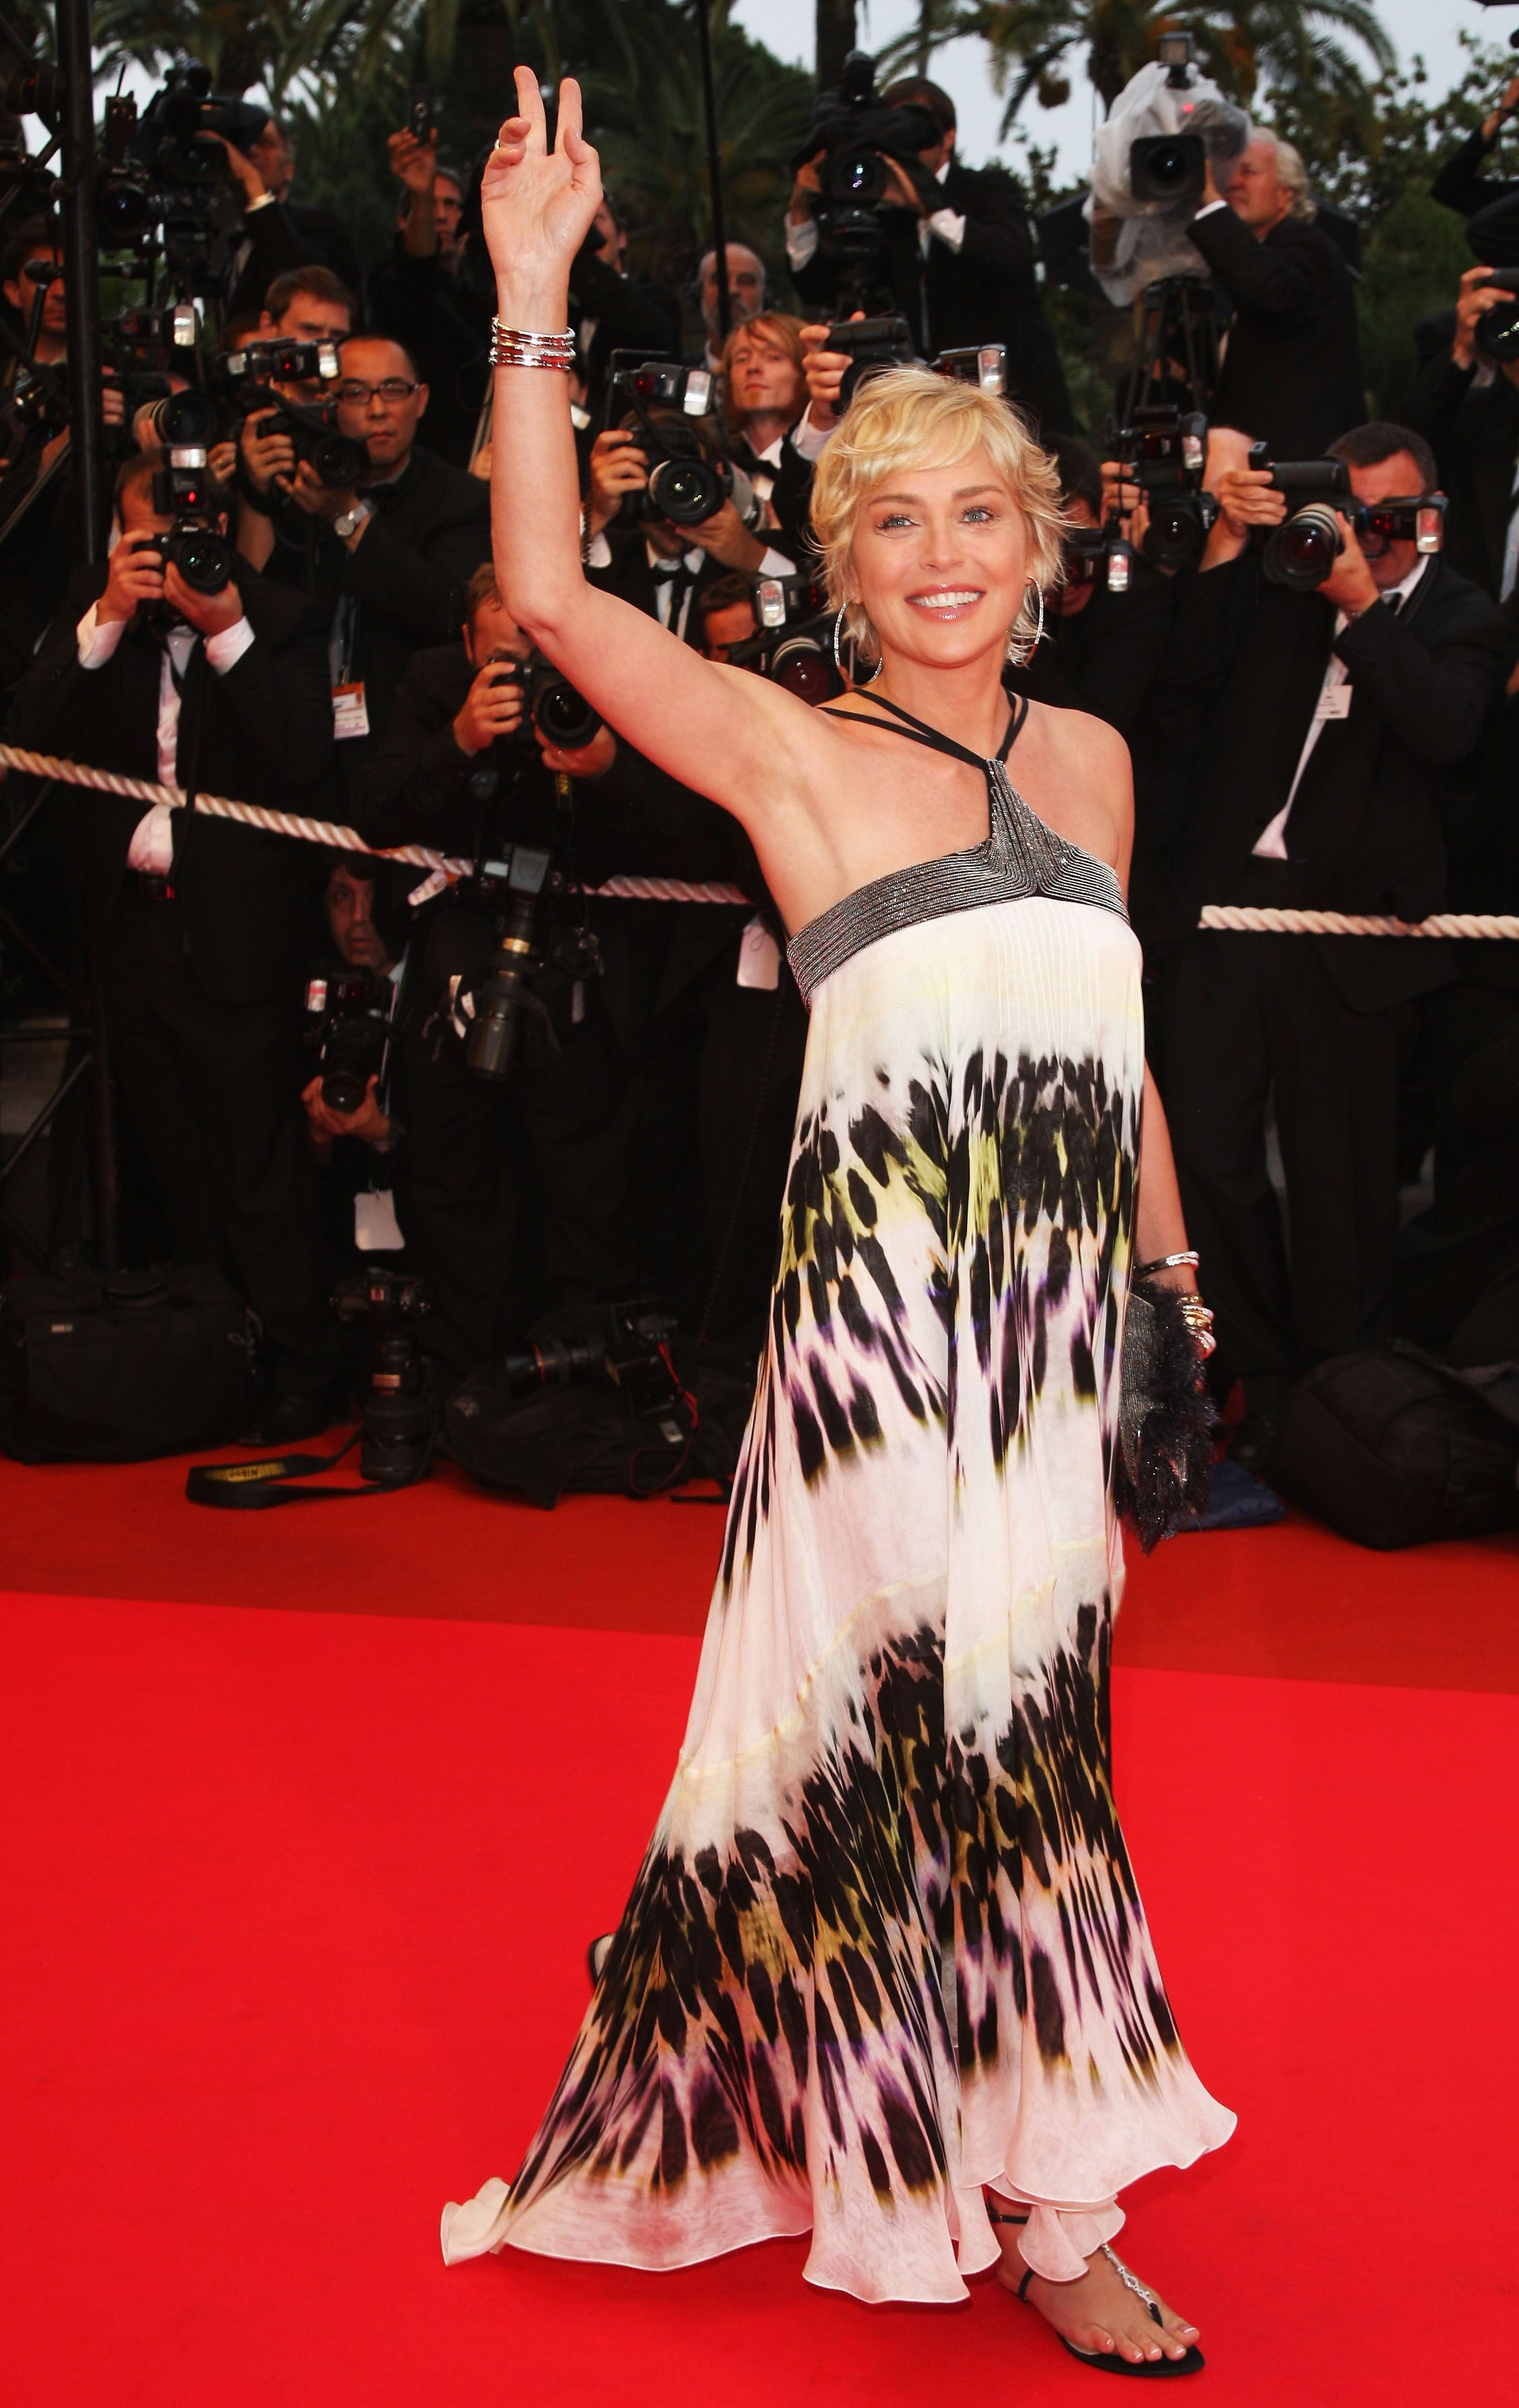 Sharon stone spiky short haircut for older women over 50 getty images - Sharon Stone